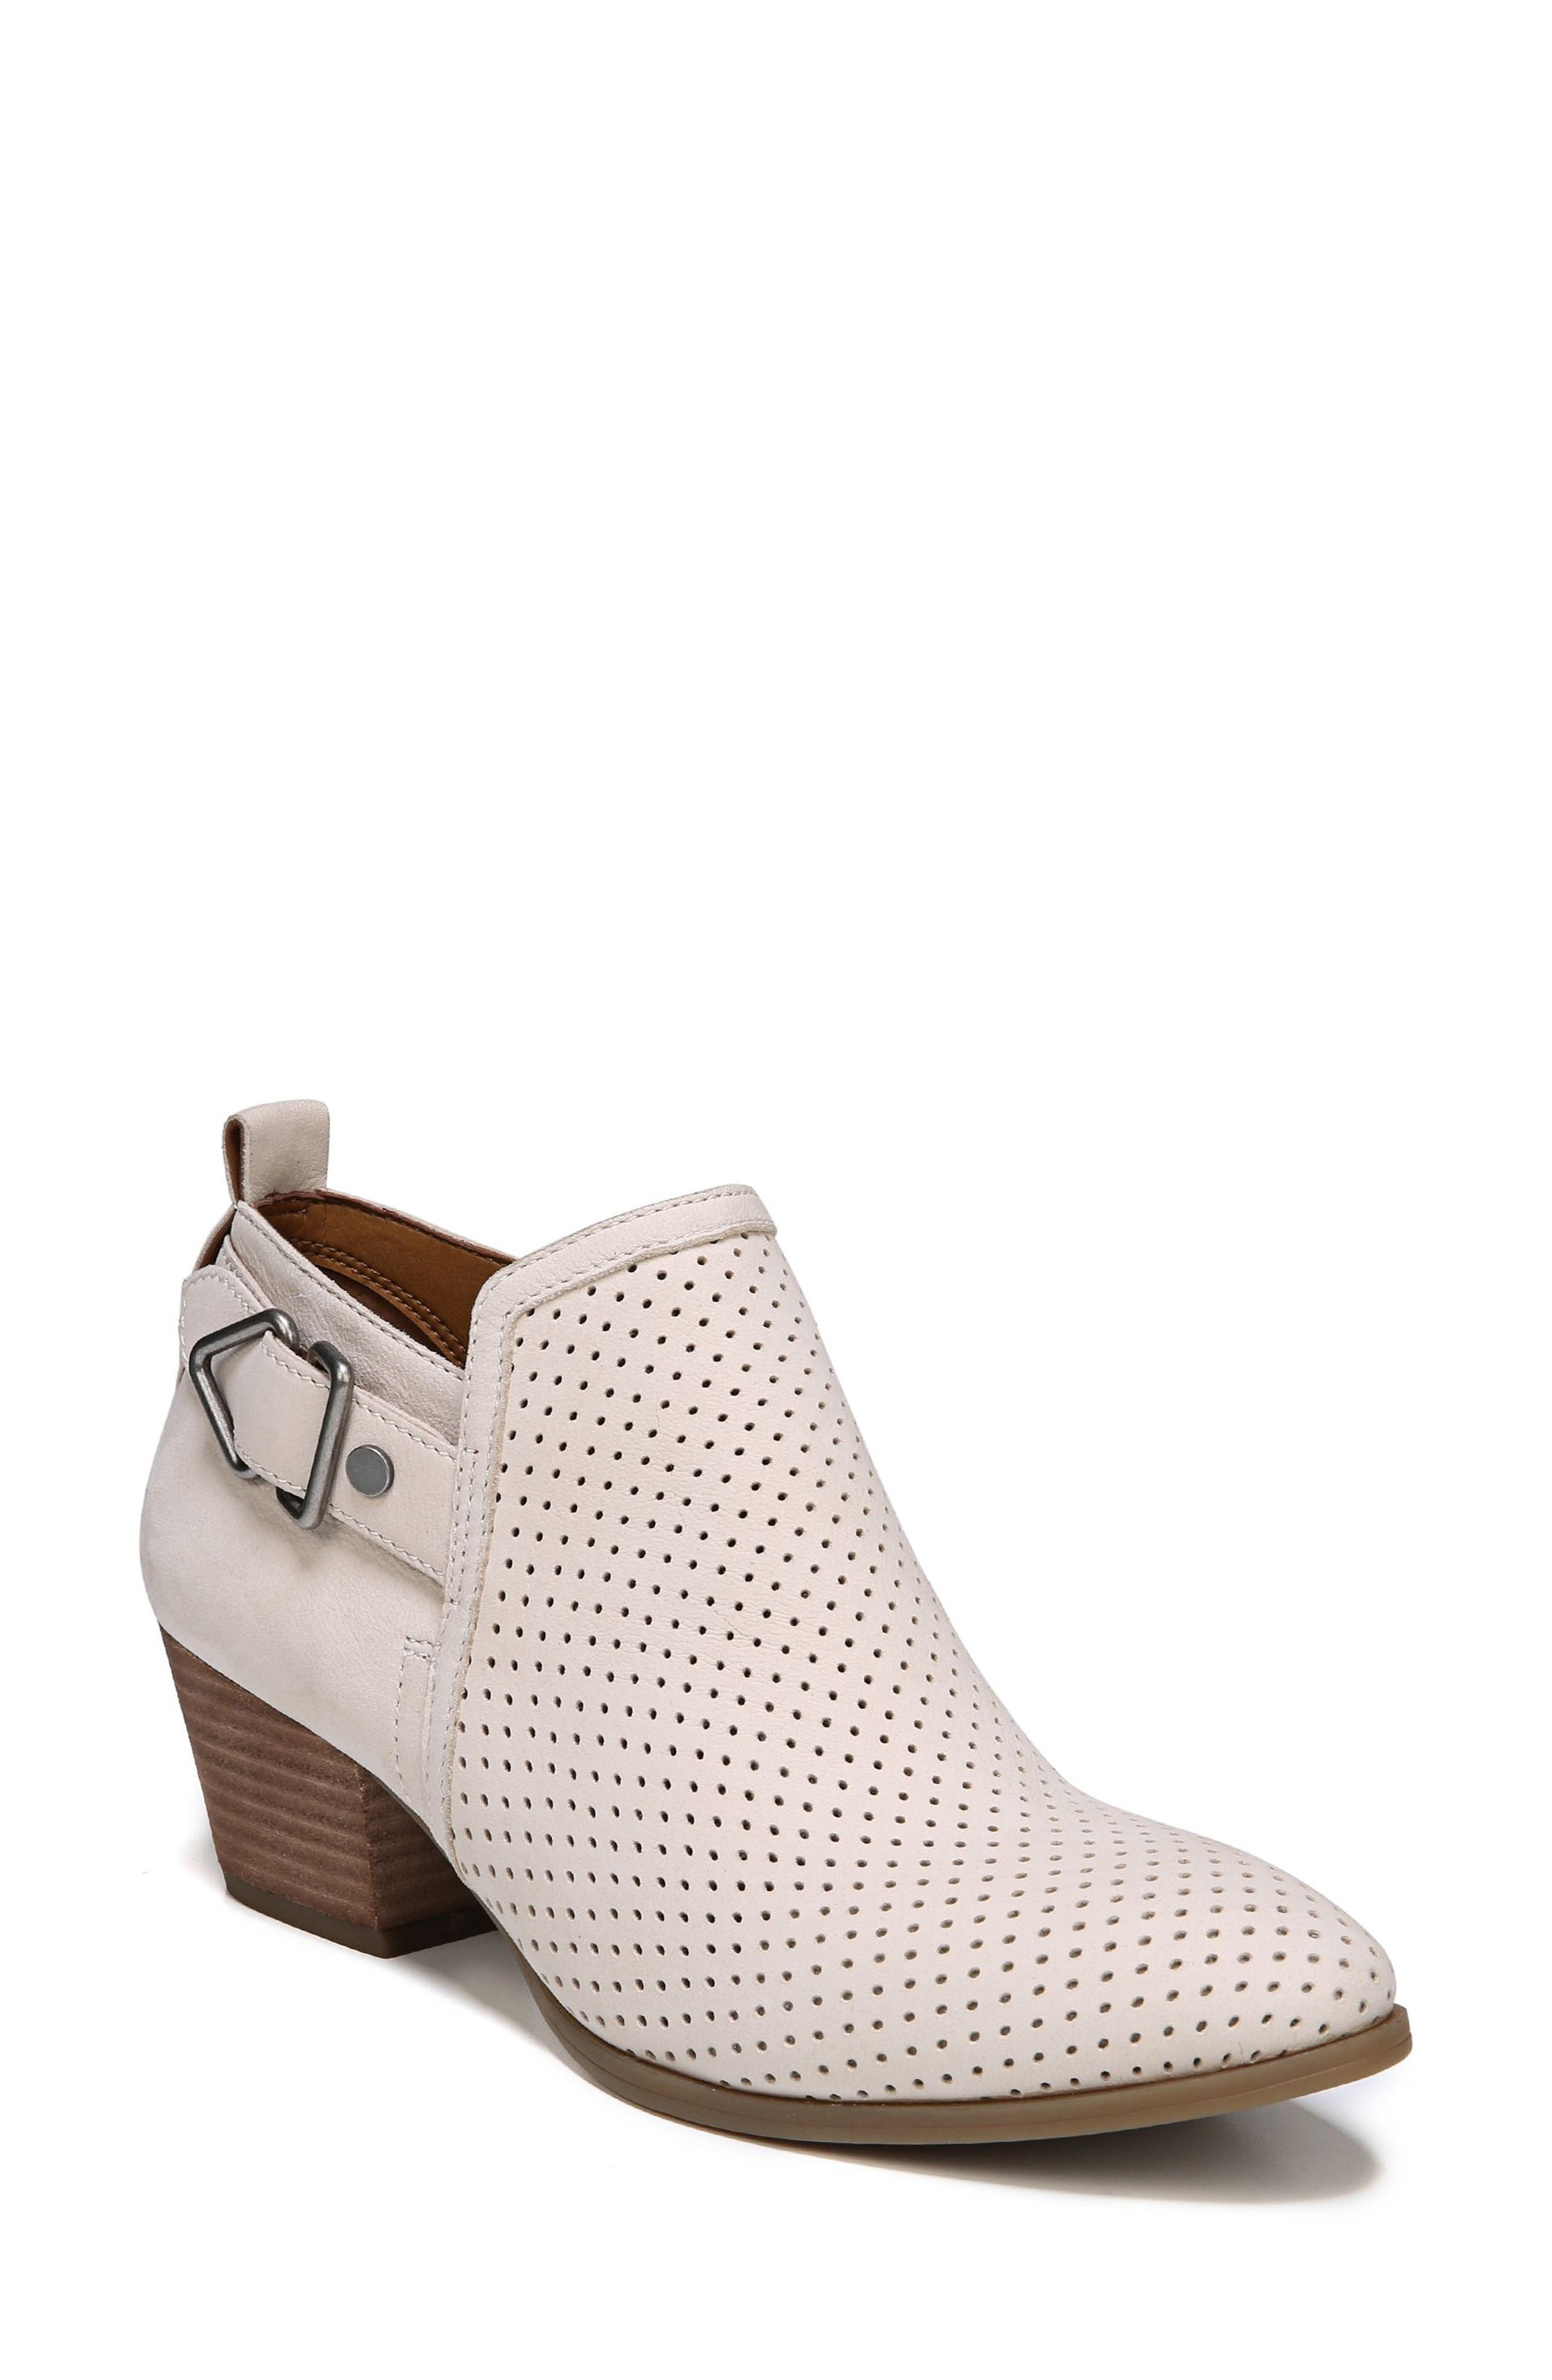 Alternate Image 1 Selected - SARTO by Franco Sarto 'Garfield' Western Bootie (Women)